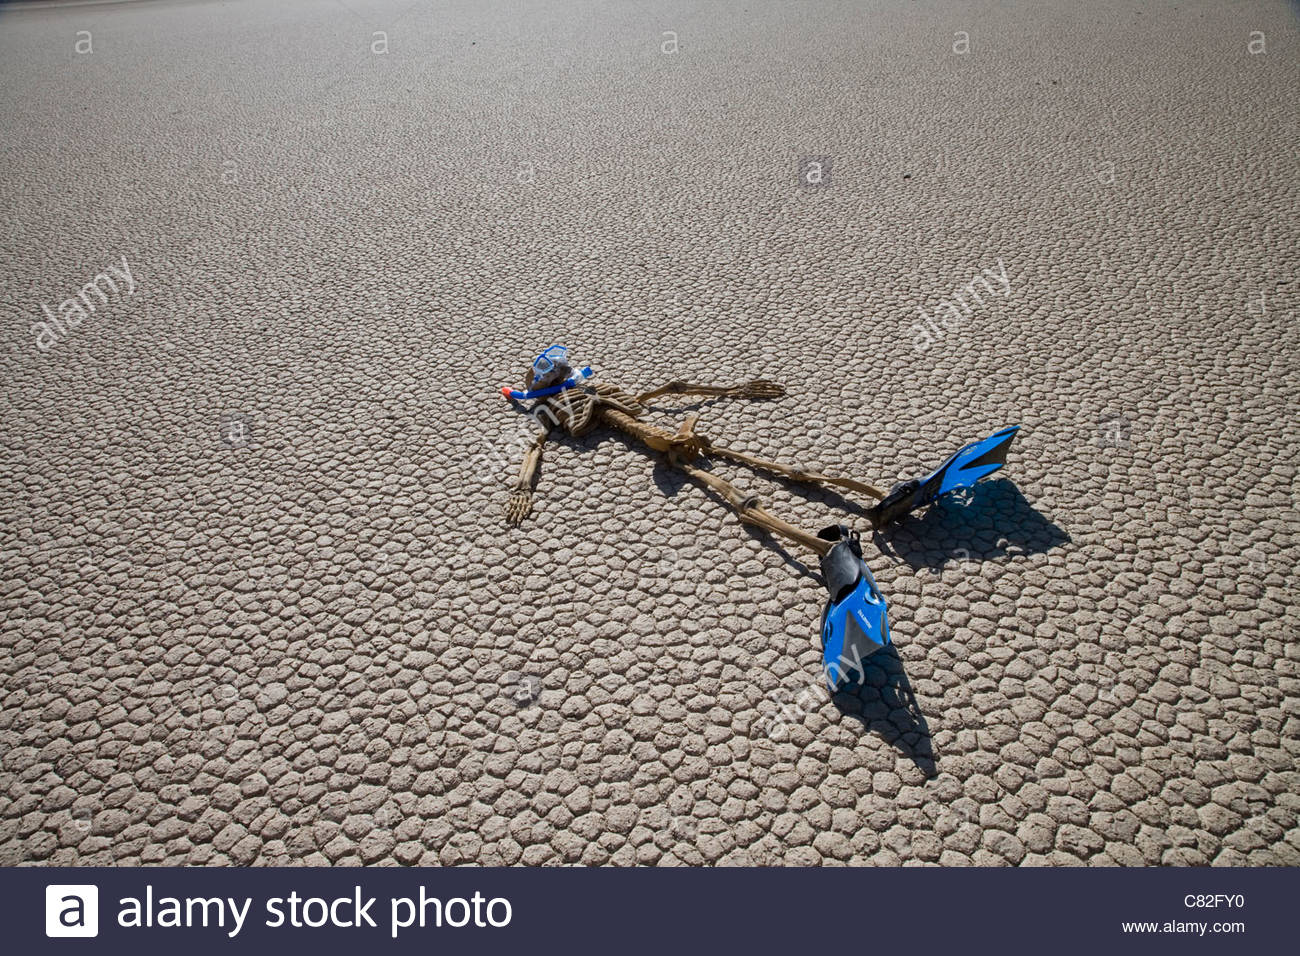 Skeleton with flippers on cracked earth,USA, California, Death Valley Stock Photo